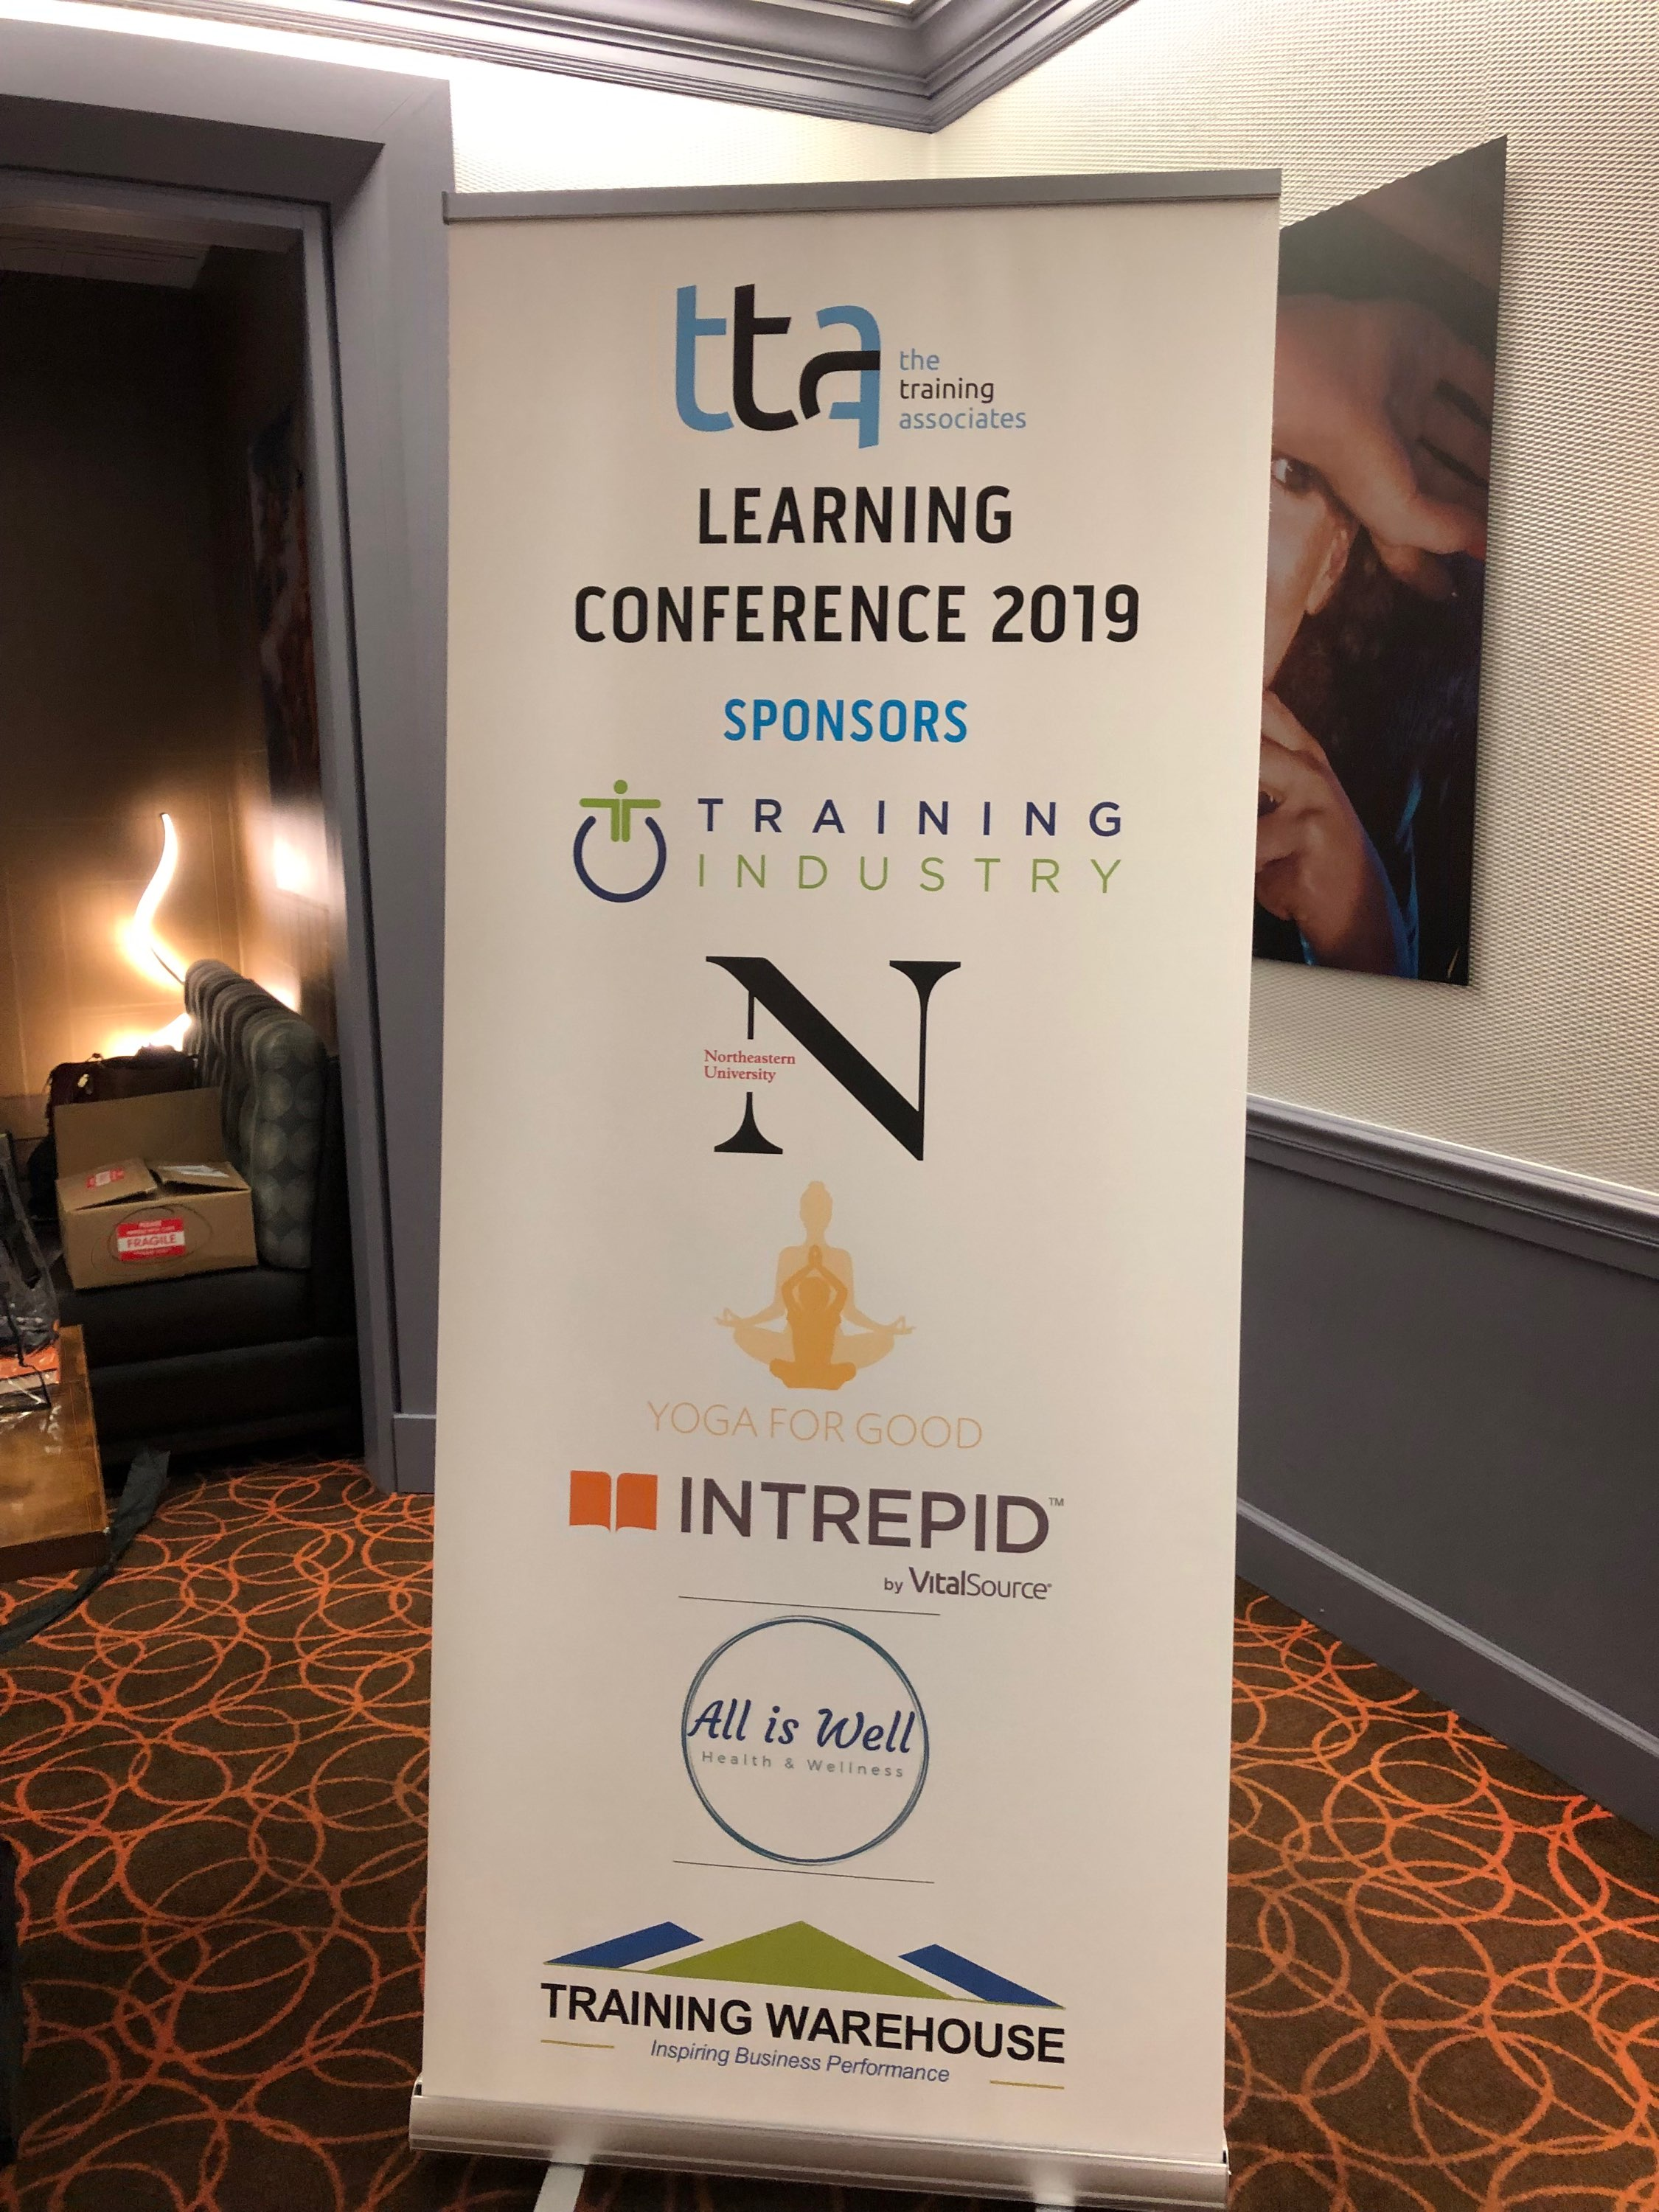 Signage for TTA's Learning conference